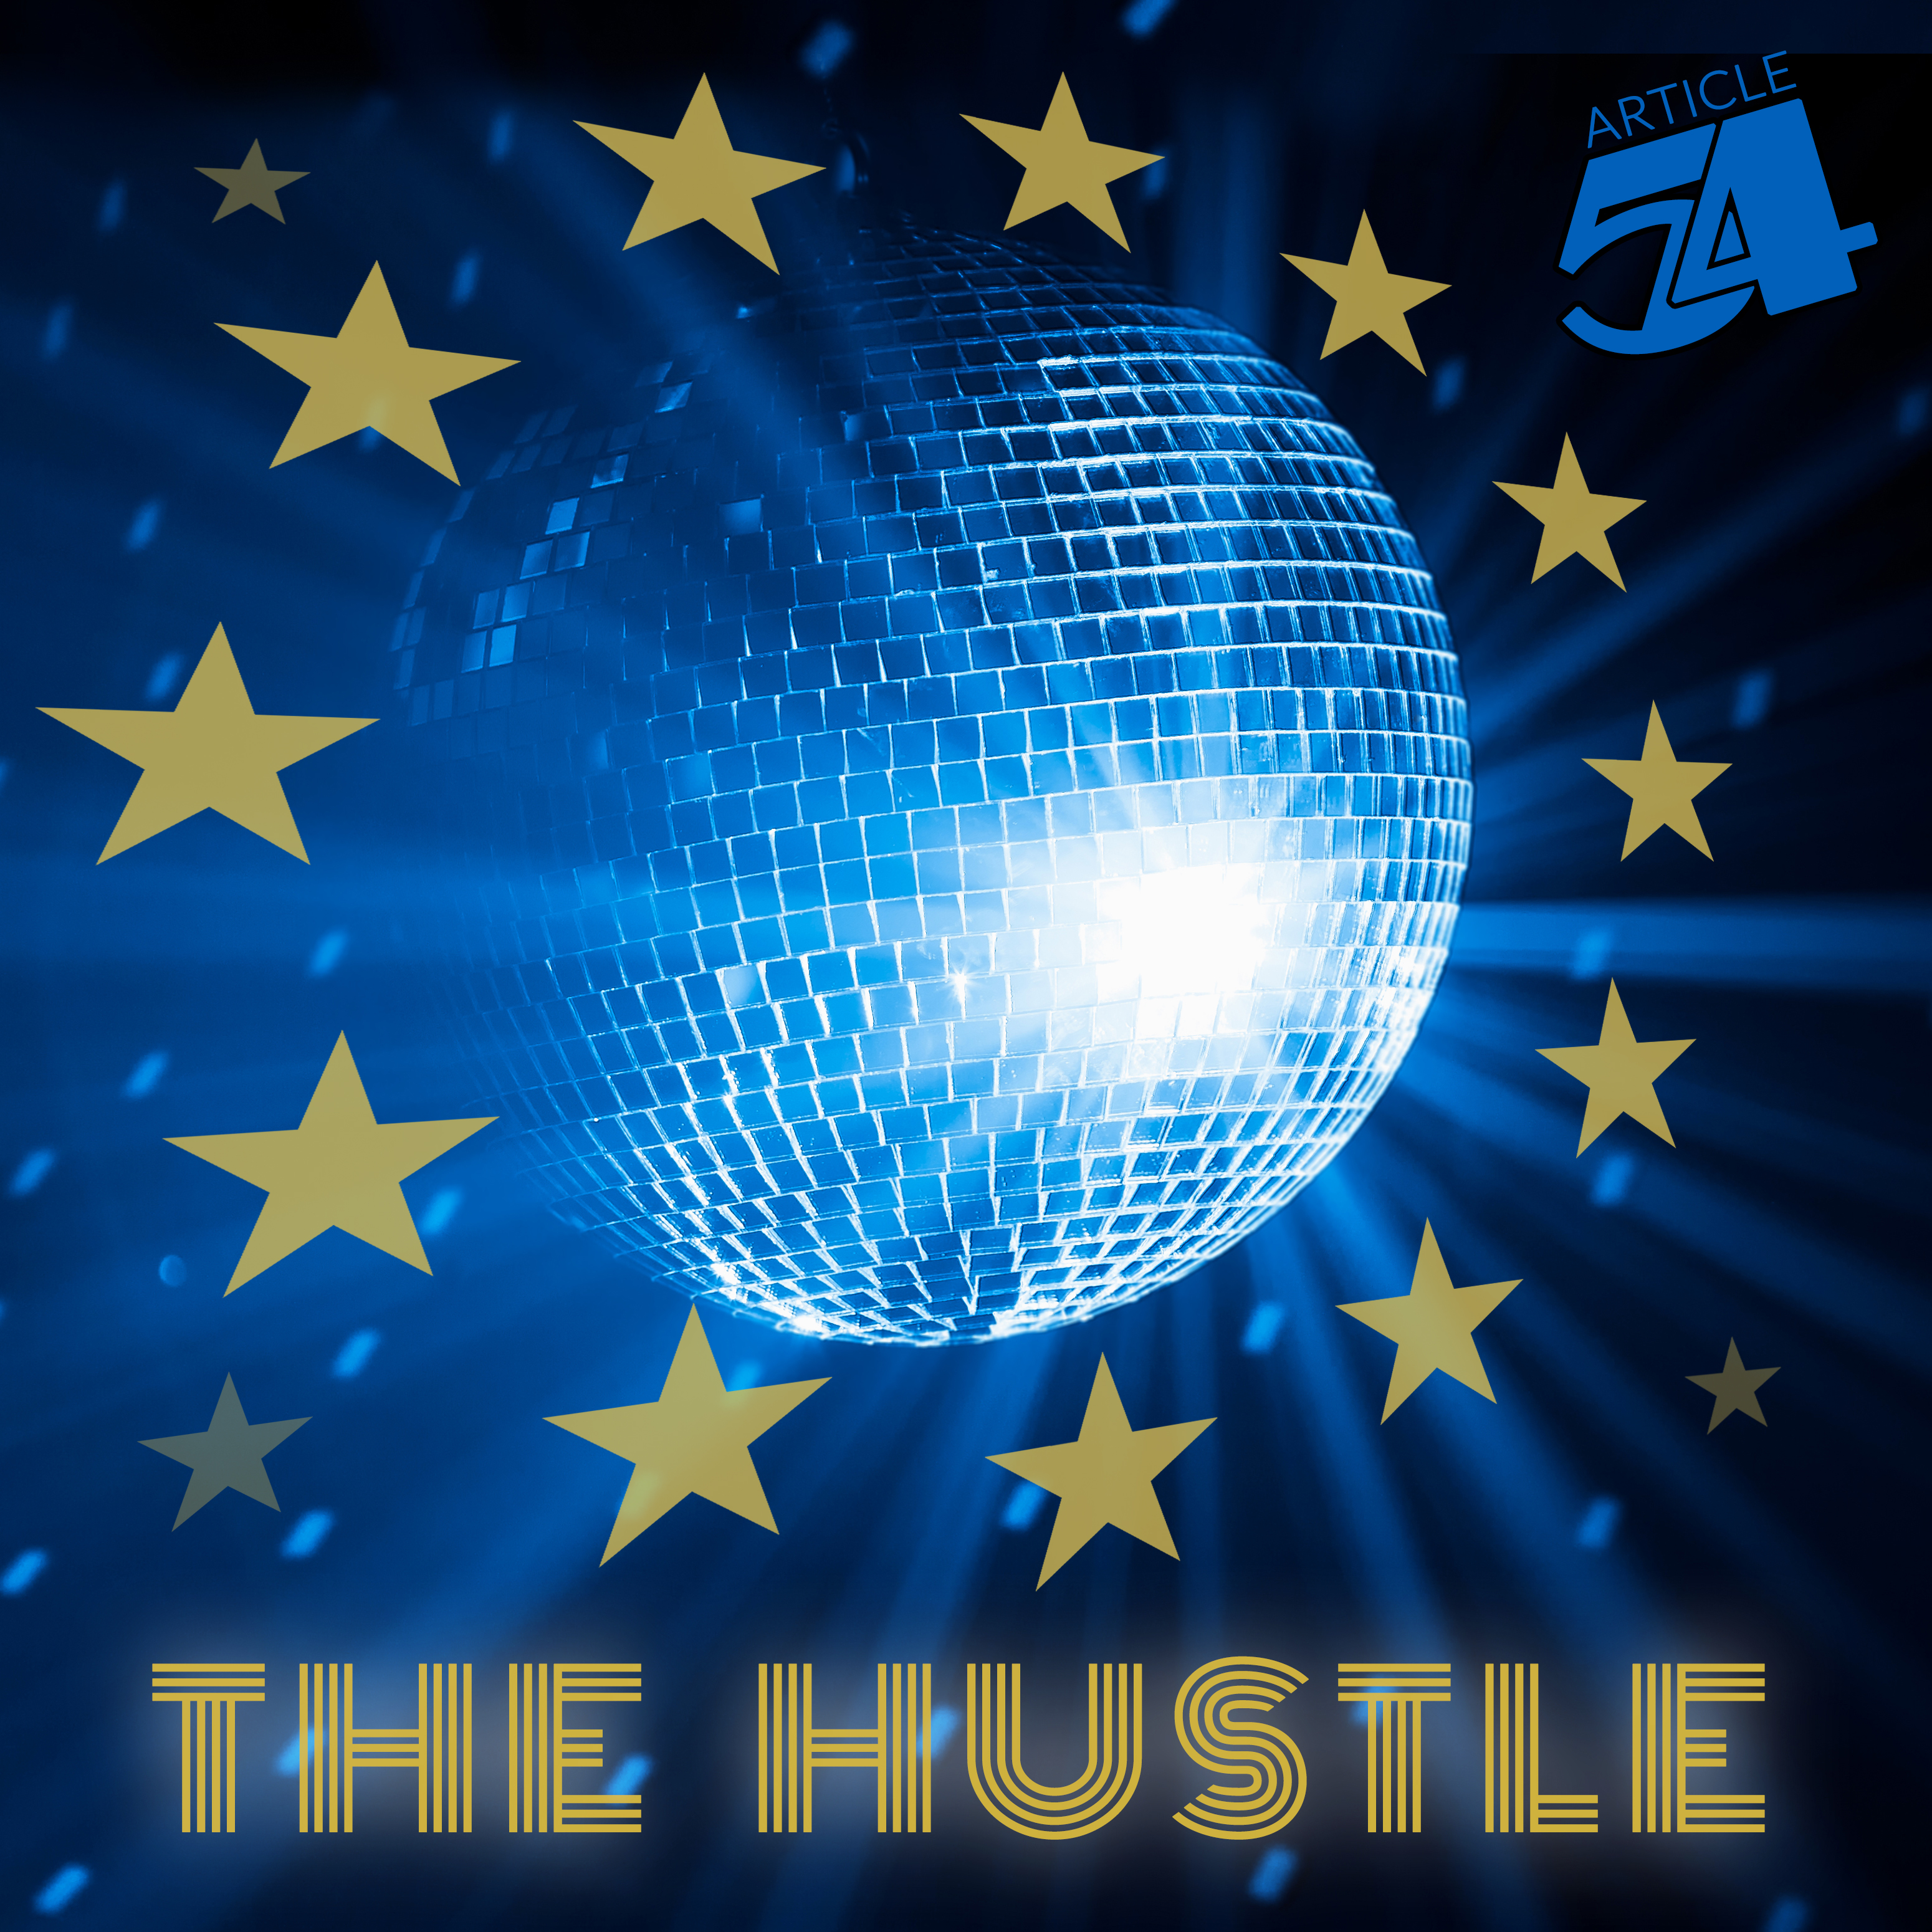 The front cover for the record The Hustle